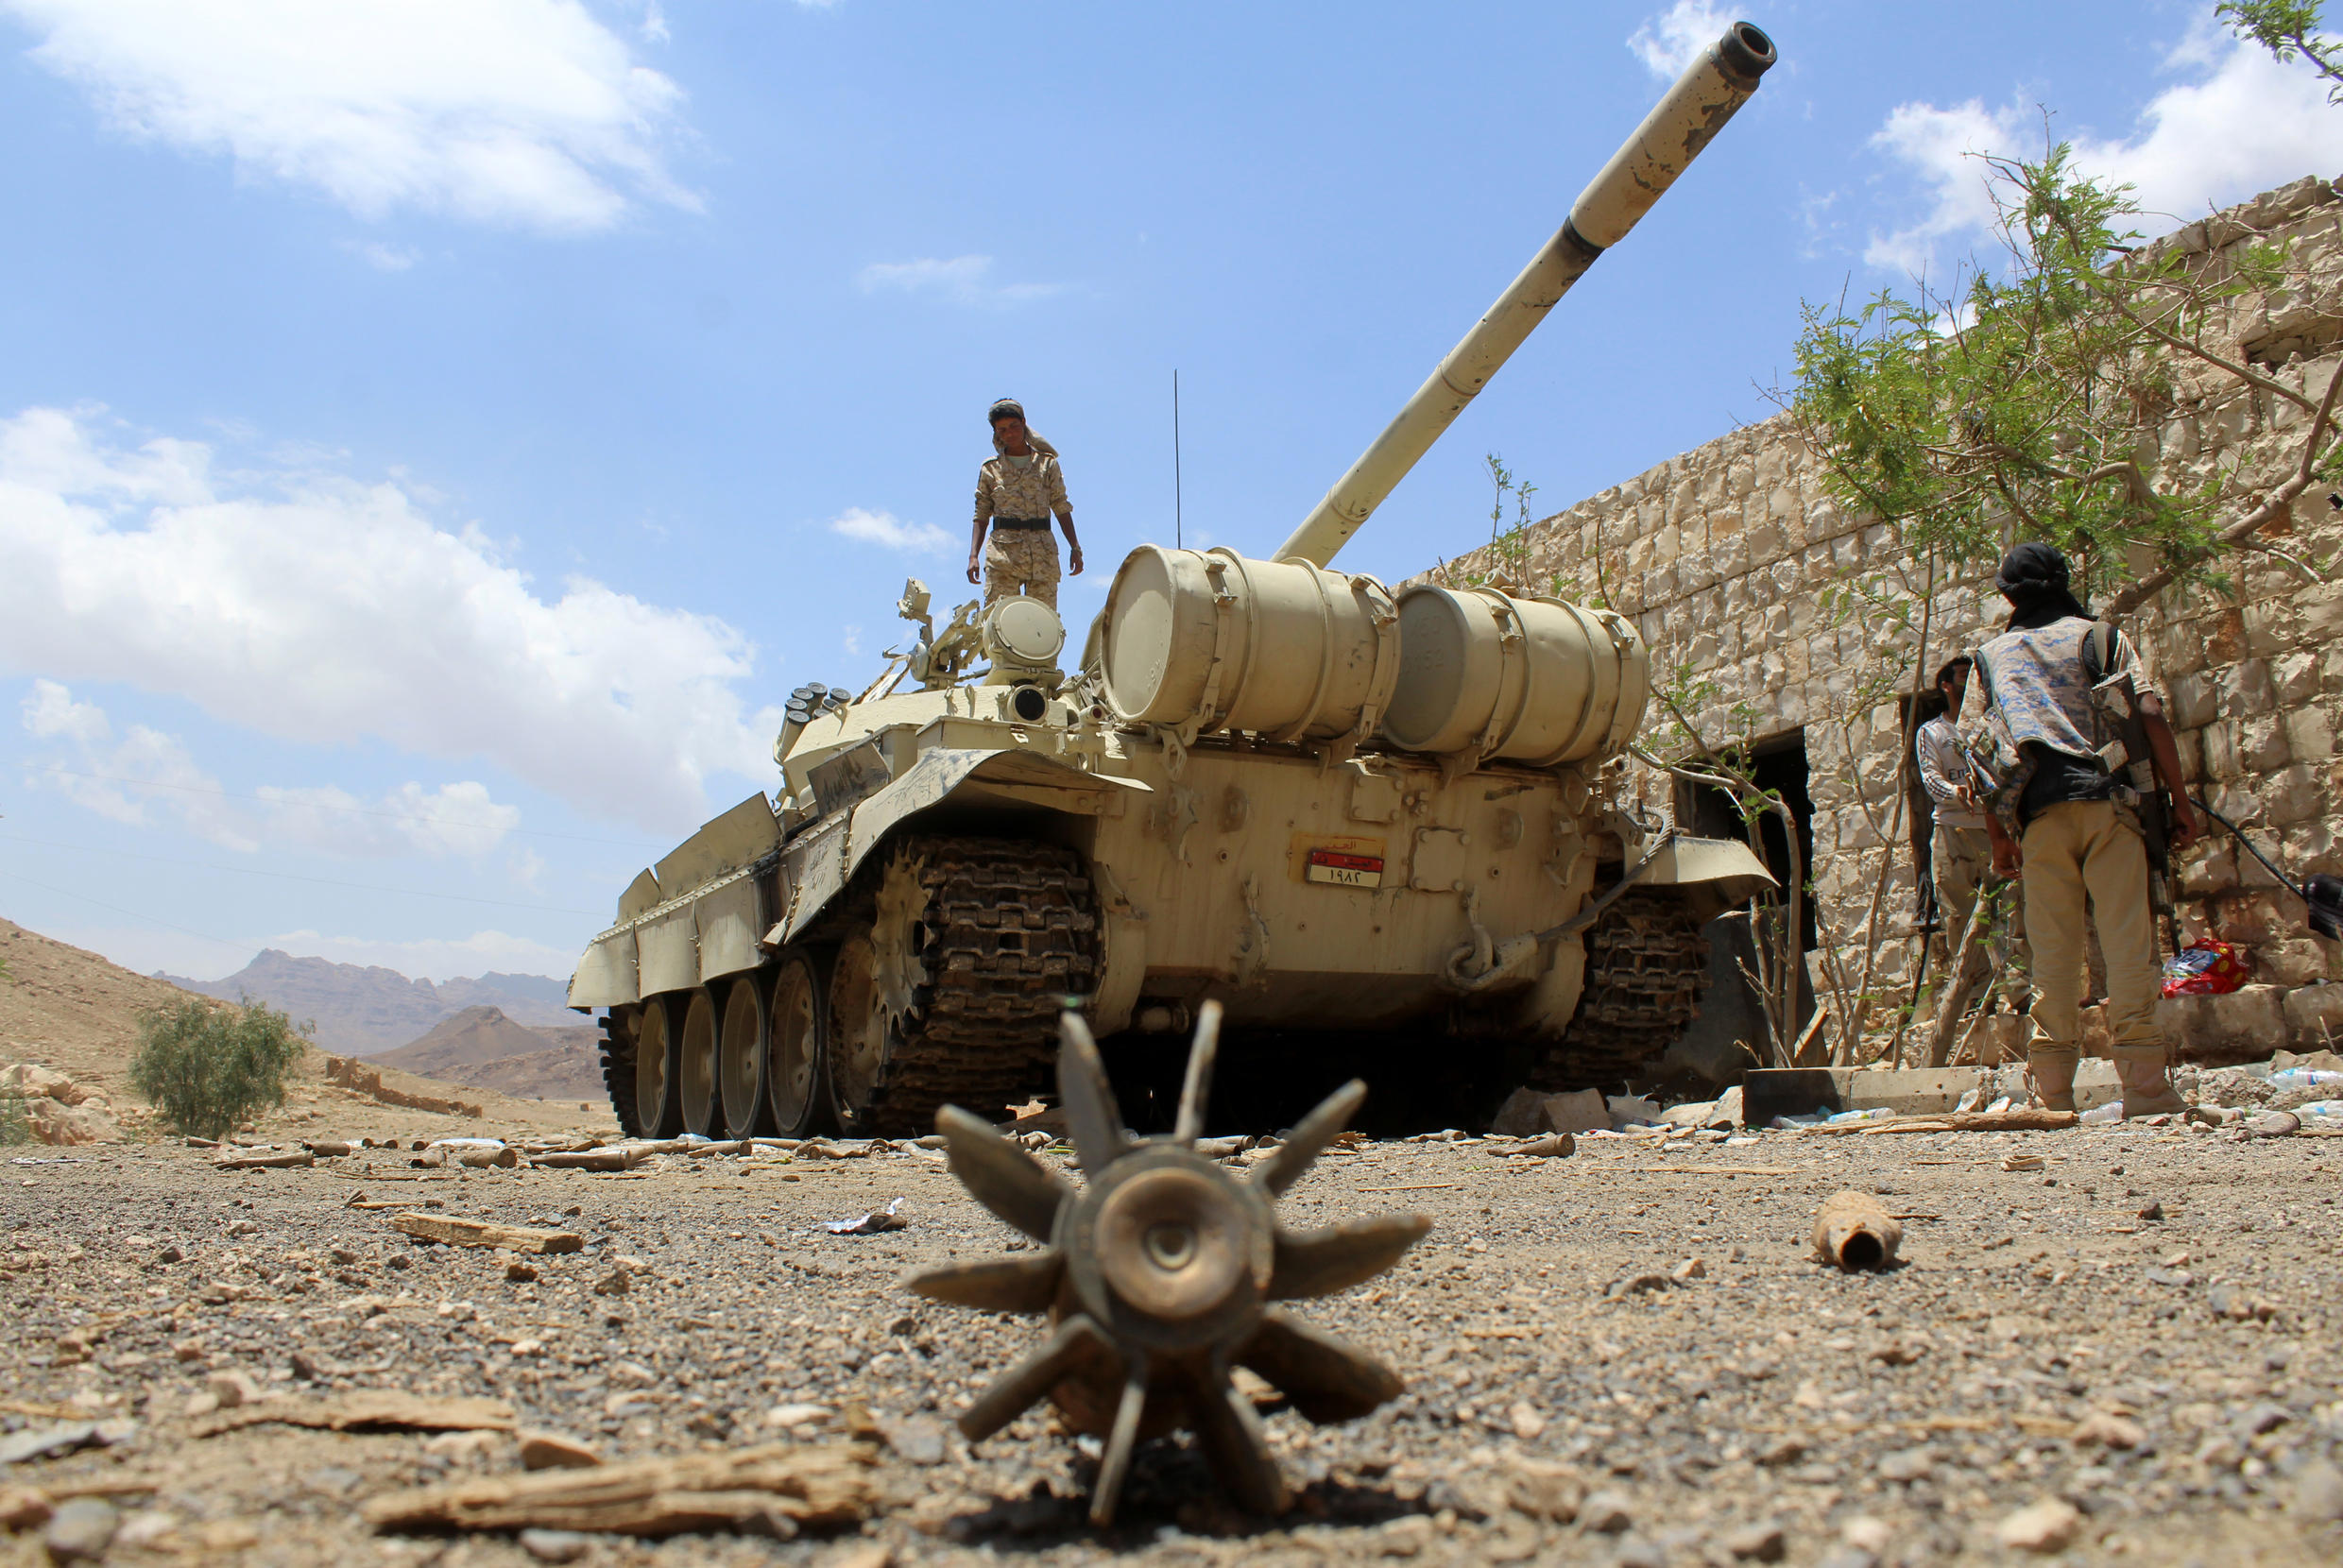 The grinding six-year war in Yemen has killed tens of thousands and displaced millions, triggering what the United Nations calls the world's worst humanitarian disaster